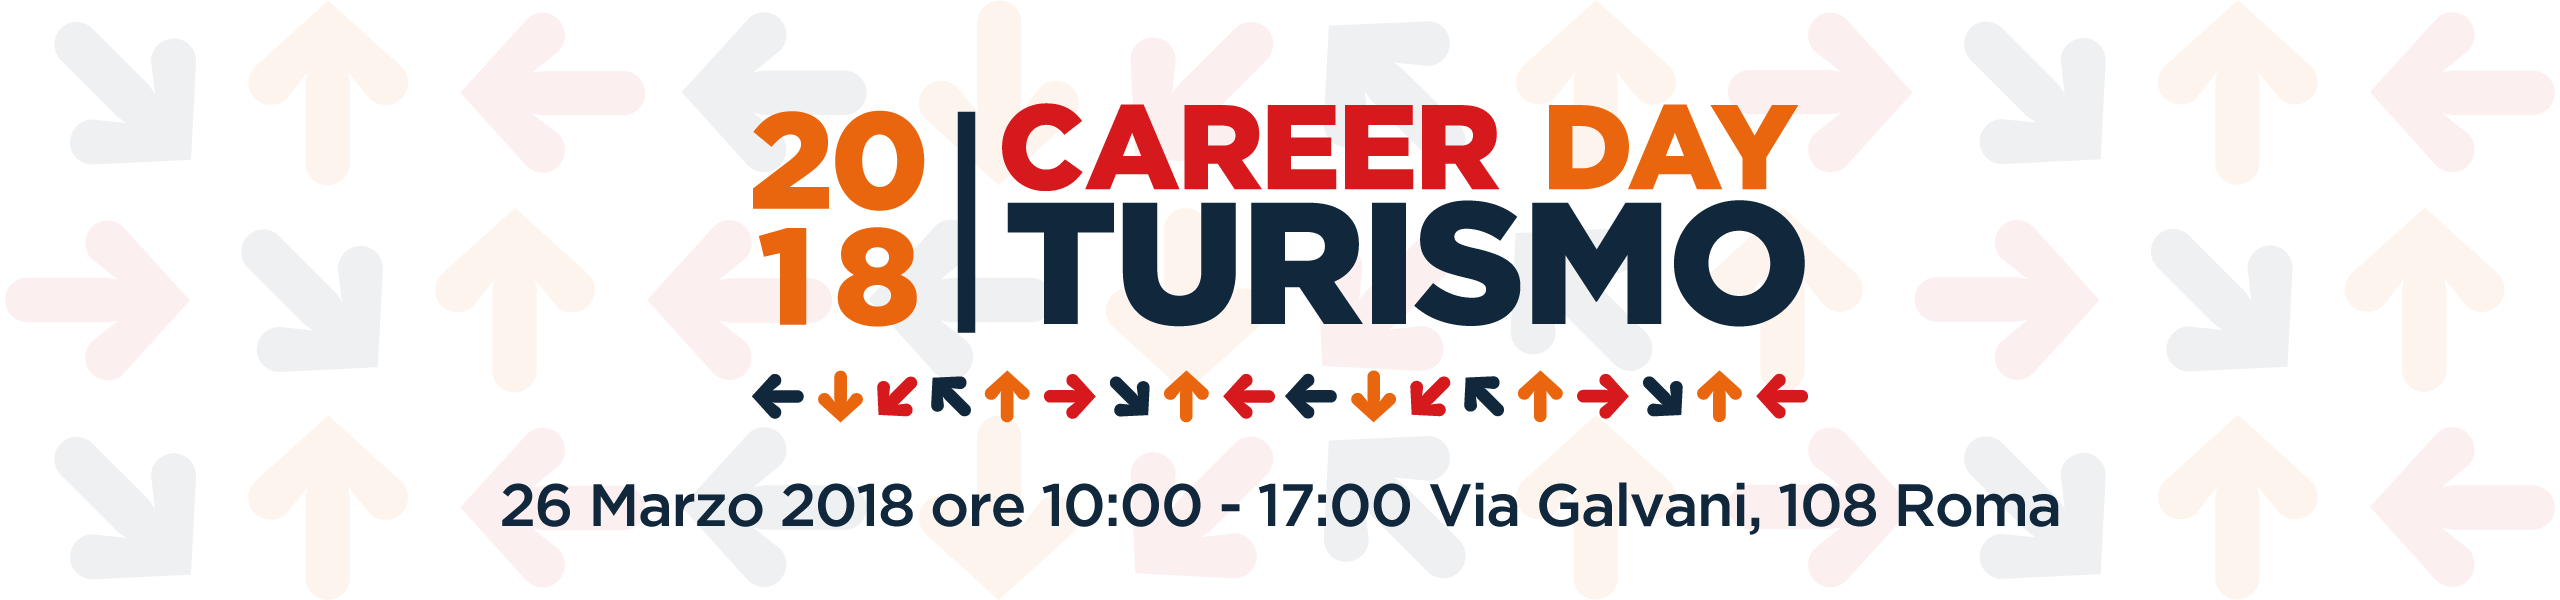 Career-Day-Turismo-Principale-Sito